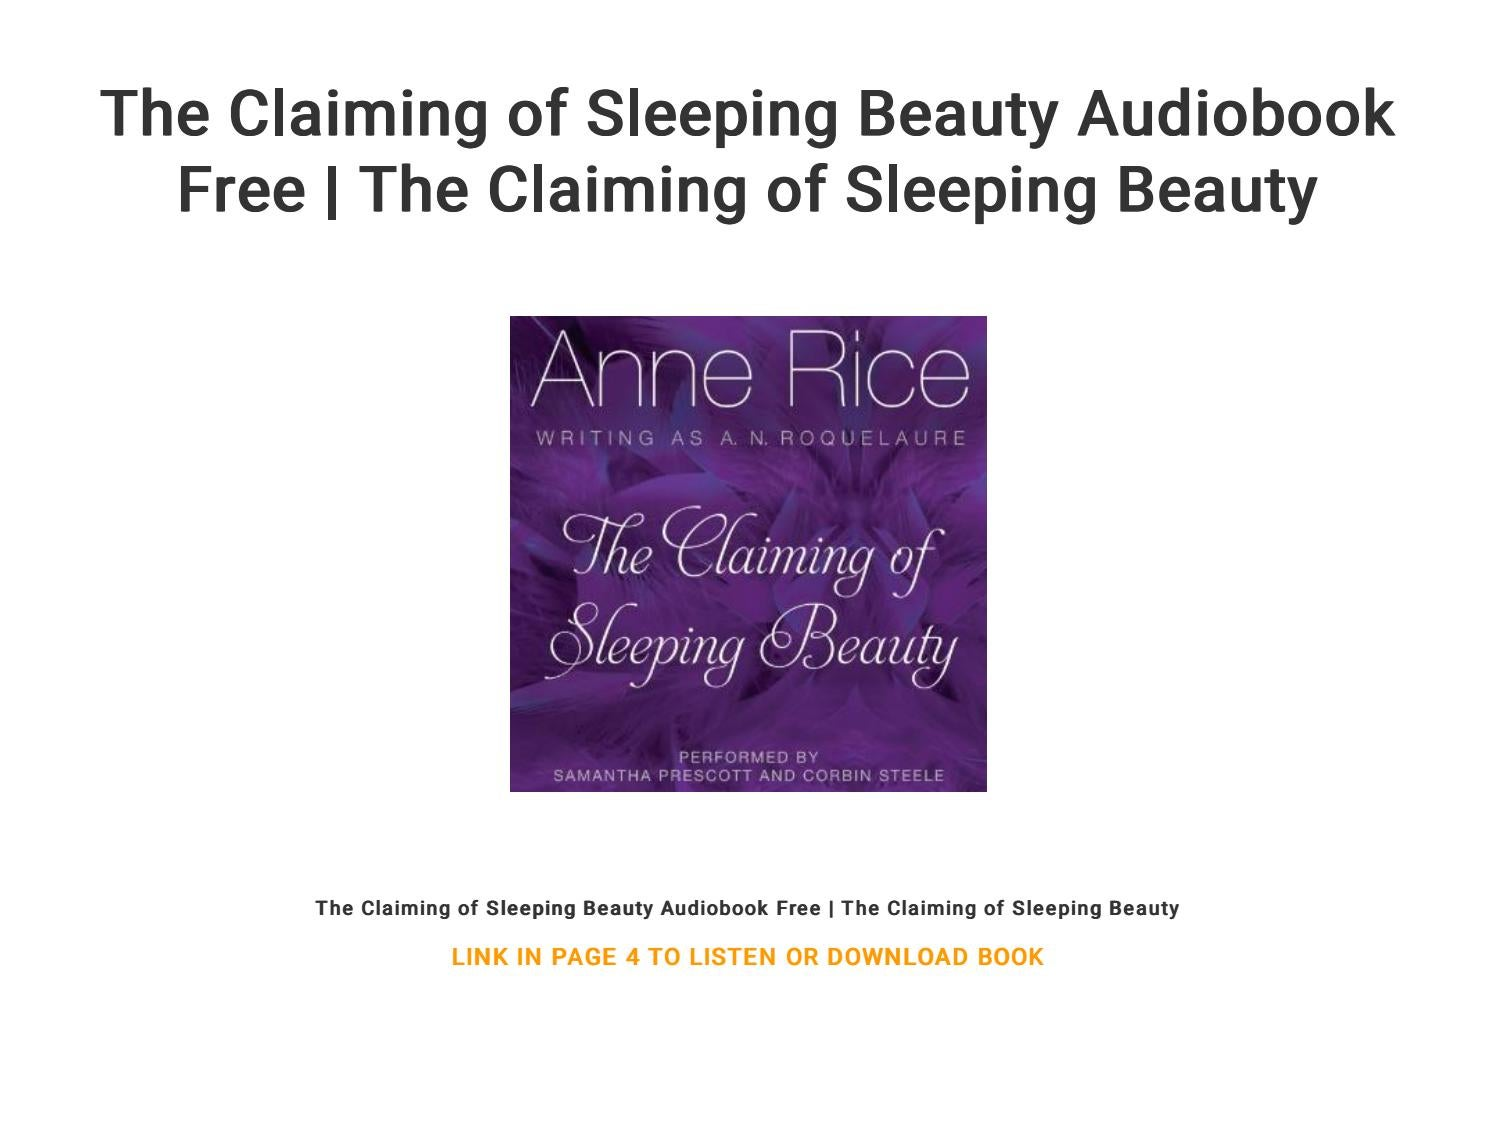 Sleeping epub claiming beauty download of the free